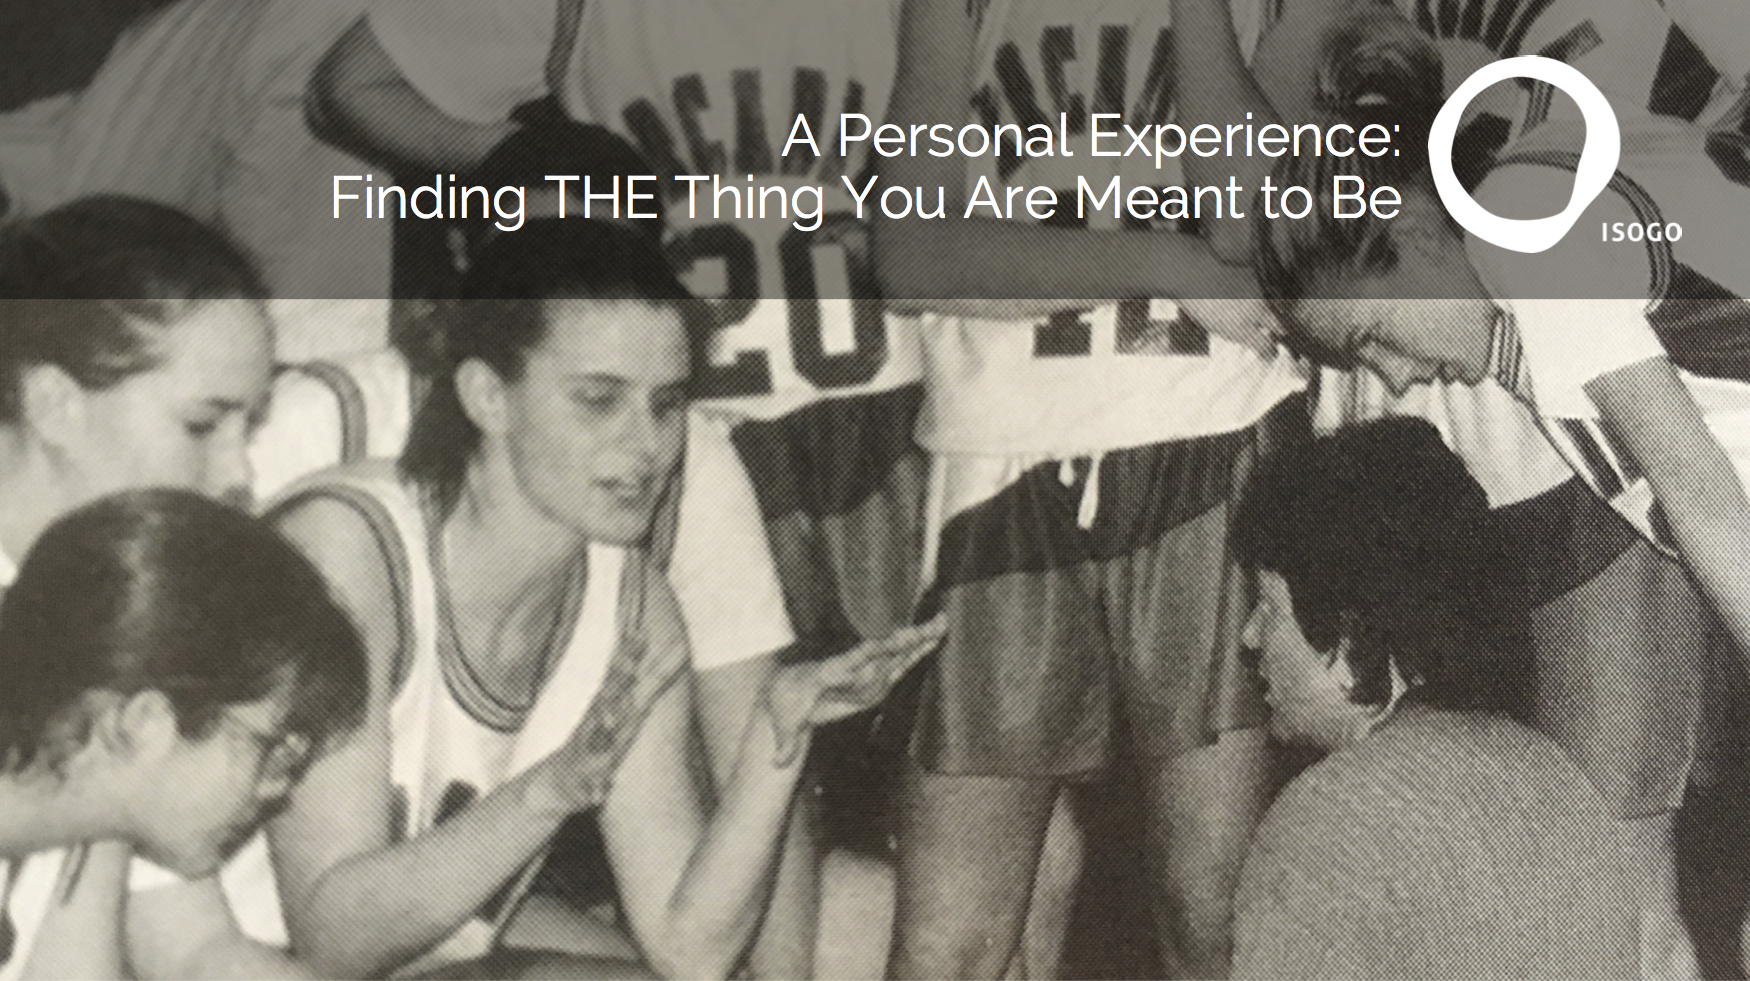 A Personal Experience: Finding THE Thing You Are Meant to Be